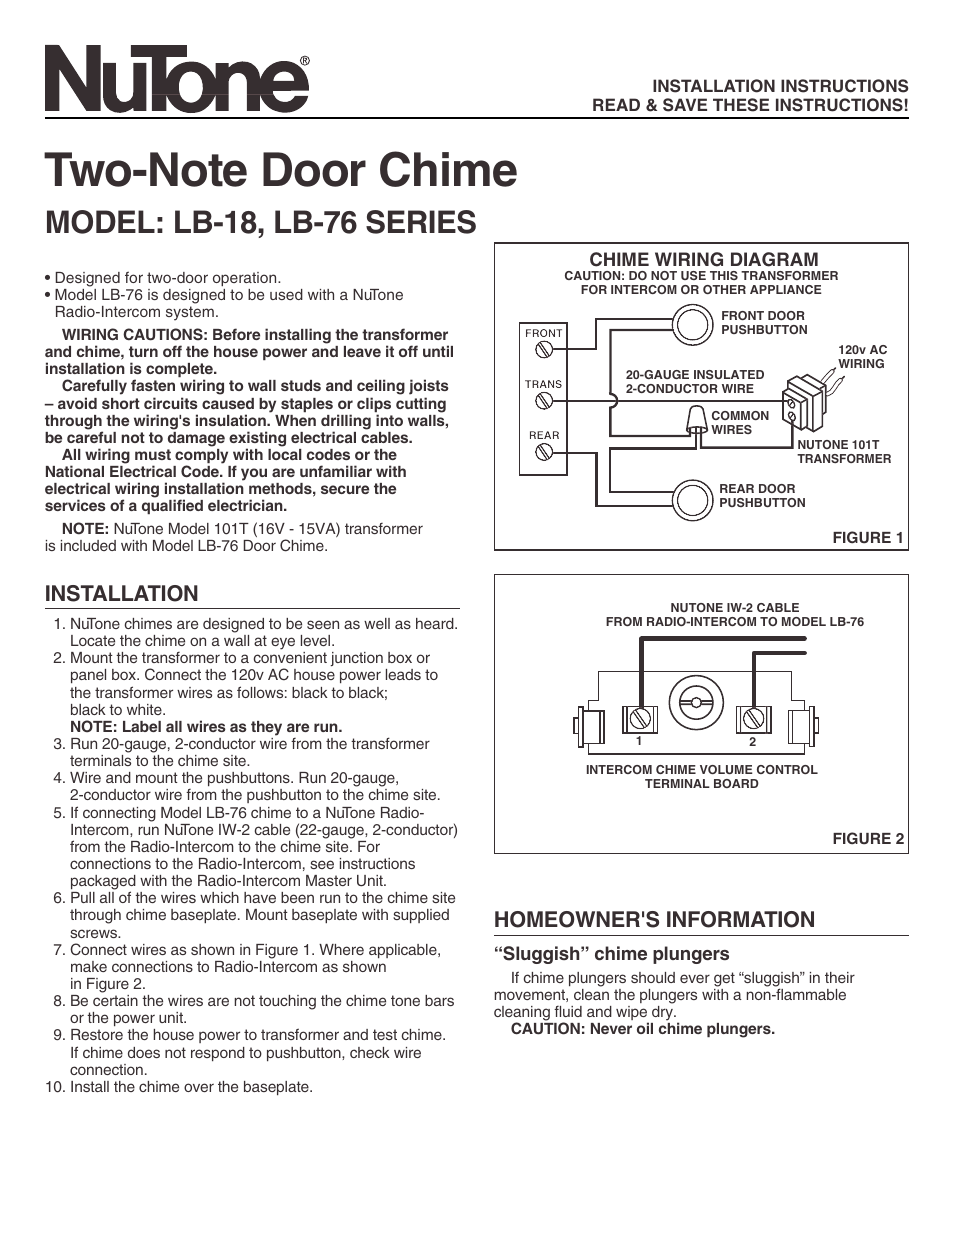 Nutone Scovill Intercom Wiring Diagram 38 Images Rewiring Old Doorbell Two Note Door Chime Lb 76 Page1 Rittenhouse Po 2